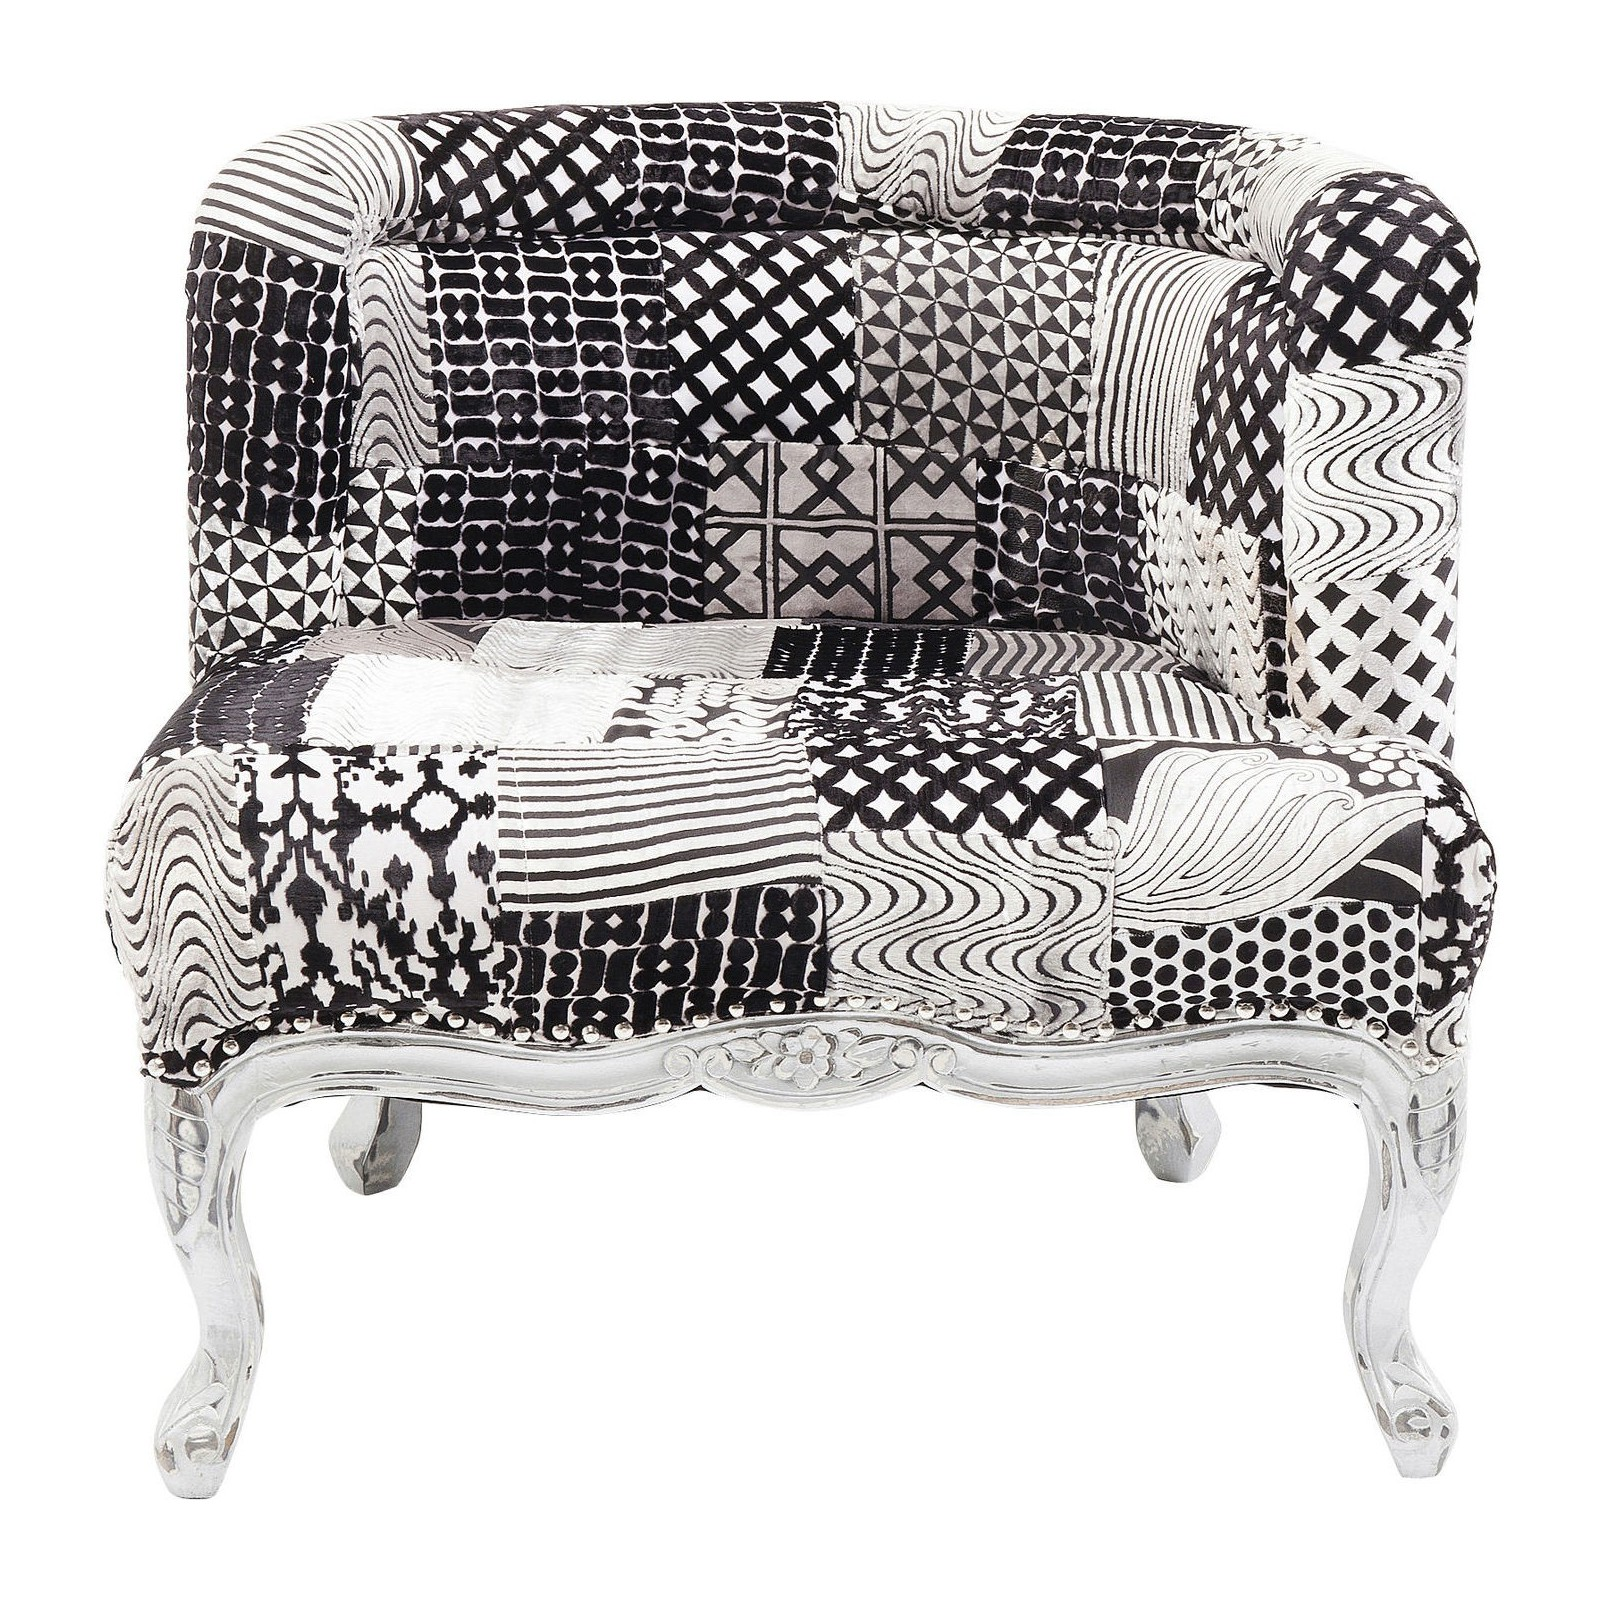 fauteuil baroque patchwork noir et blanc rockstar kare design. Black Bedroom Furniture Sets. Home Design Ideas